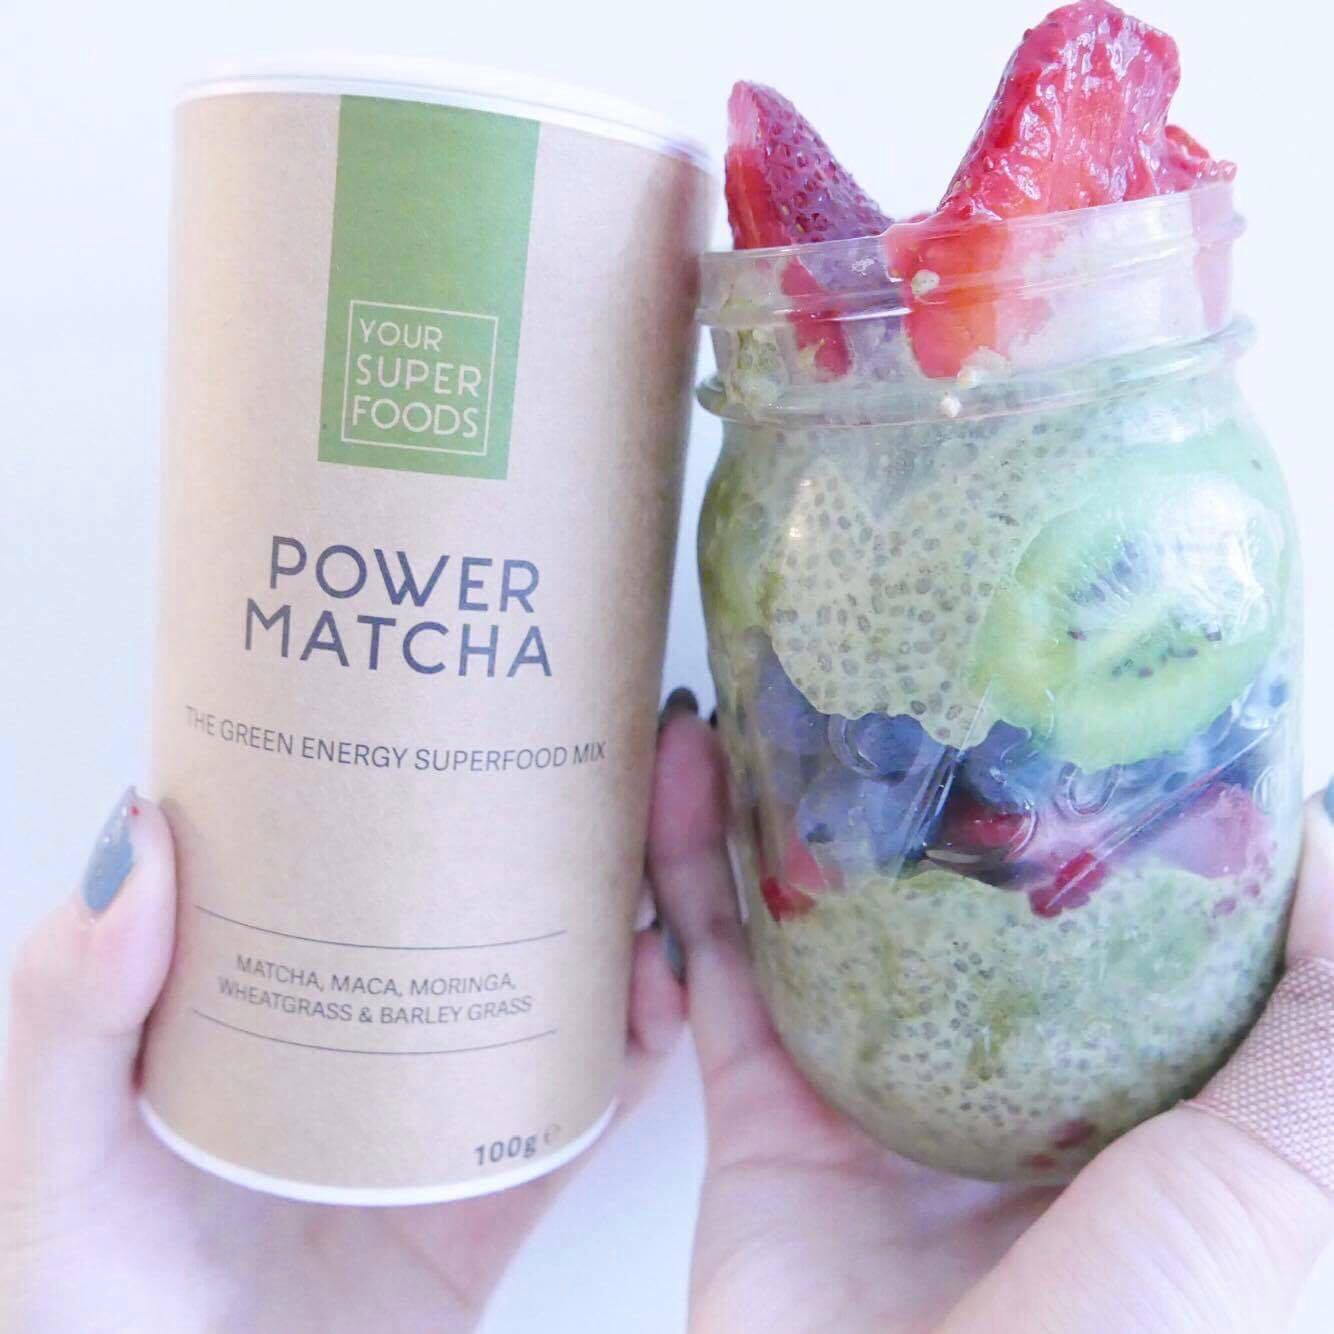 Power Matcha - matcha green tea with ancient maca root, African moringa leaves, powerful wheatgrass and barley grass. I mixed it with a chia seed pudding to make a Power Matcha Pudding Mix!